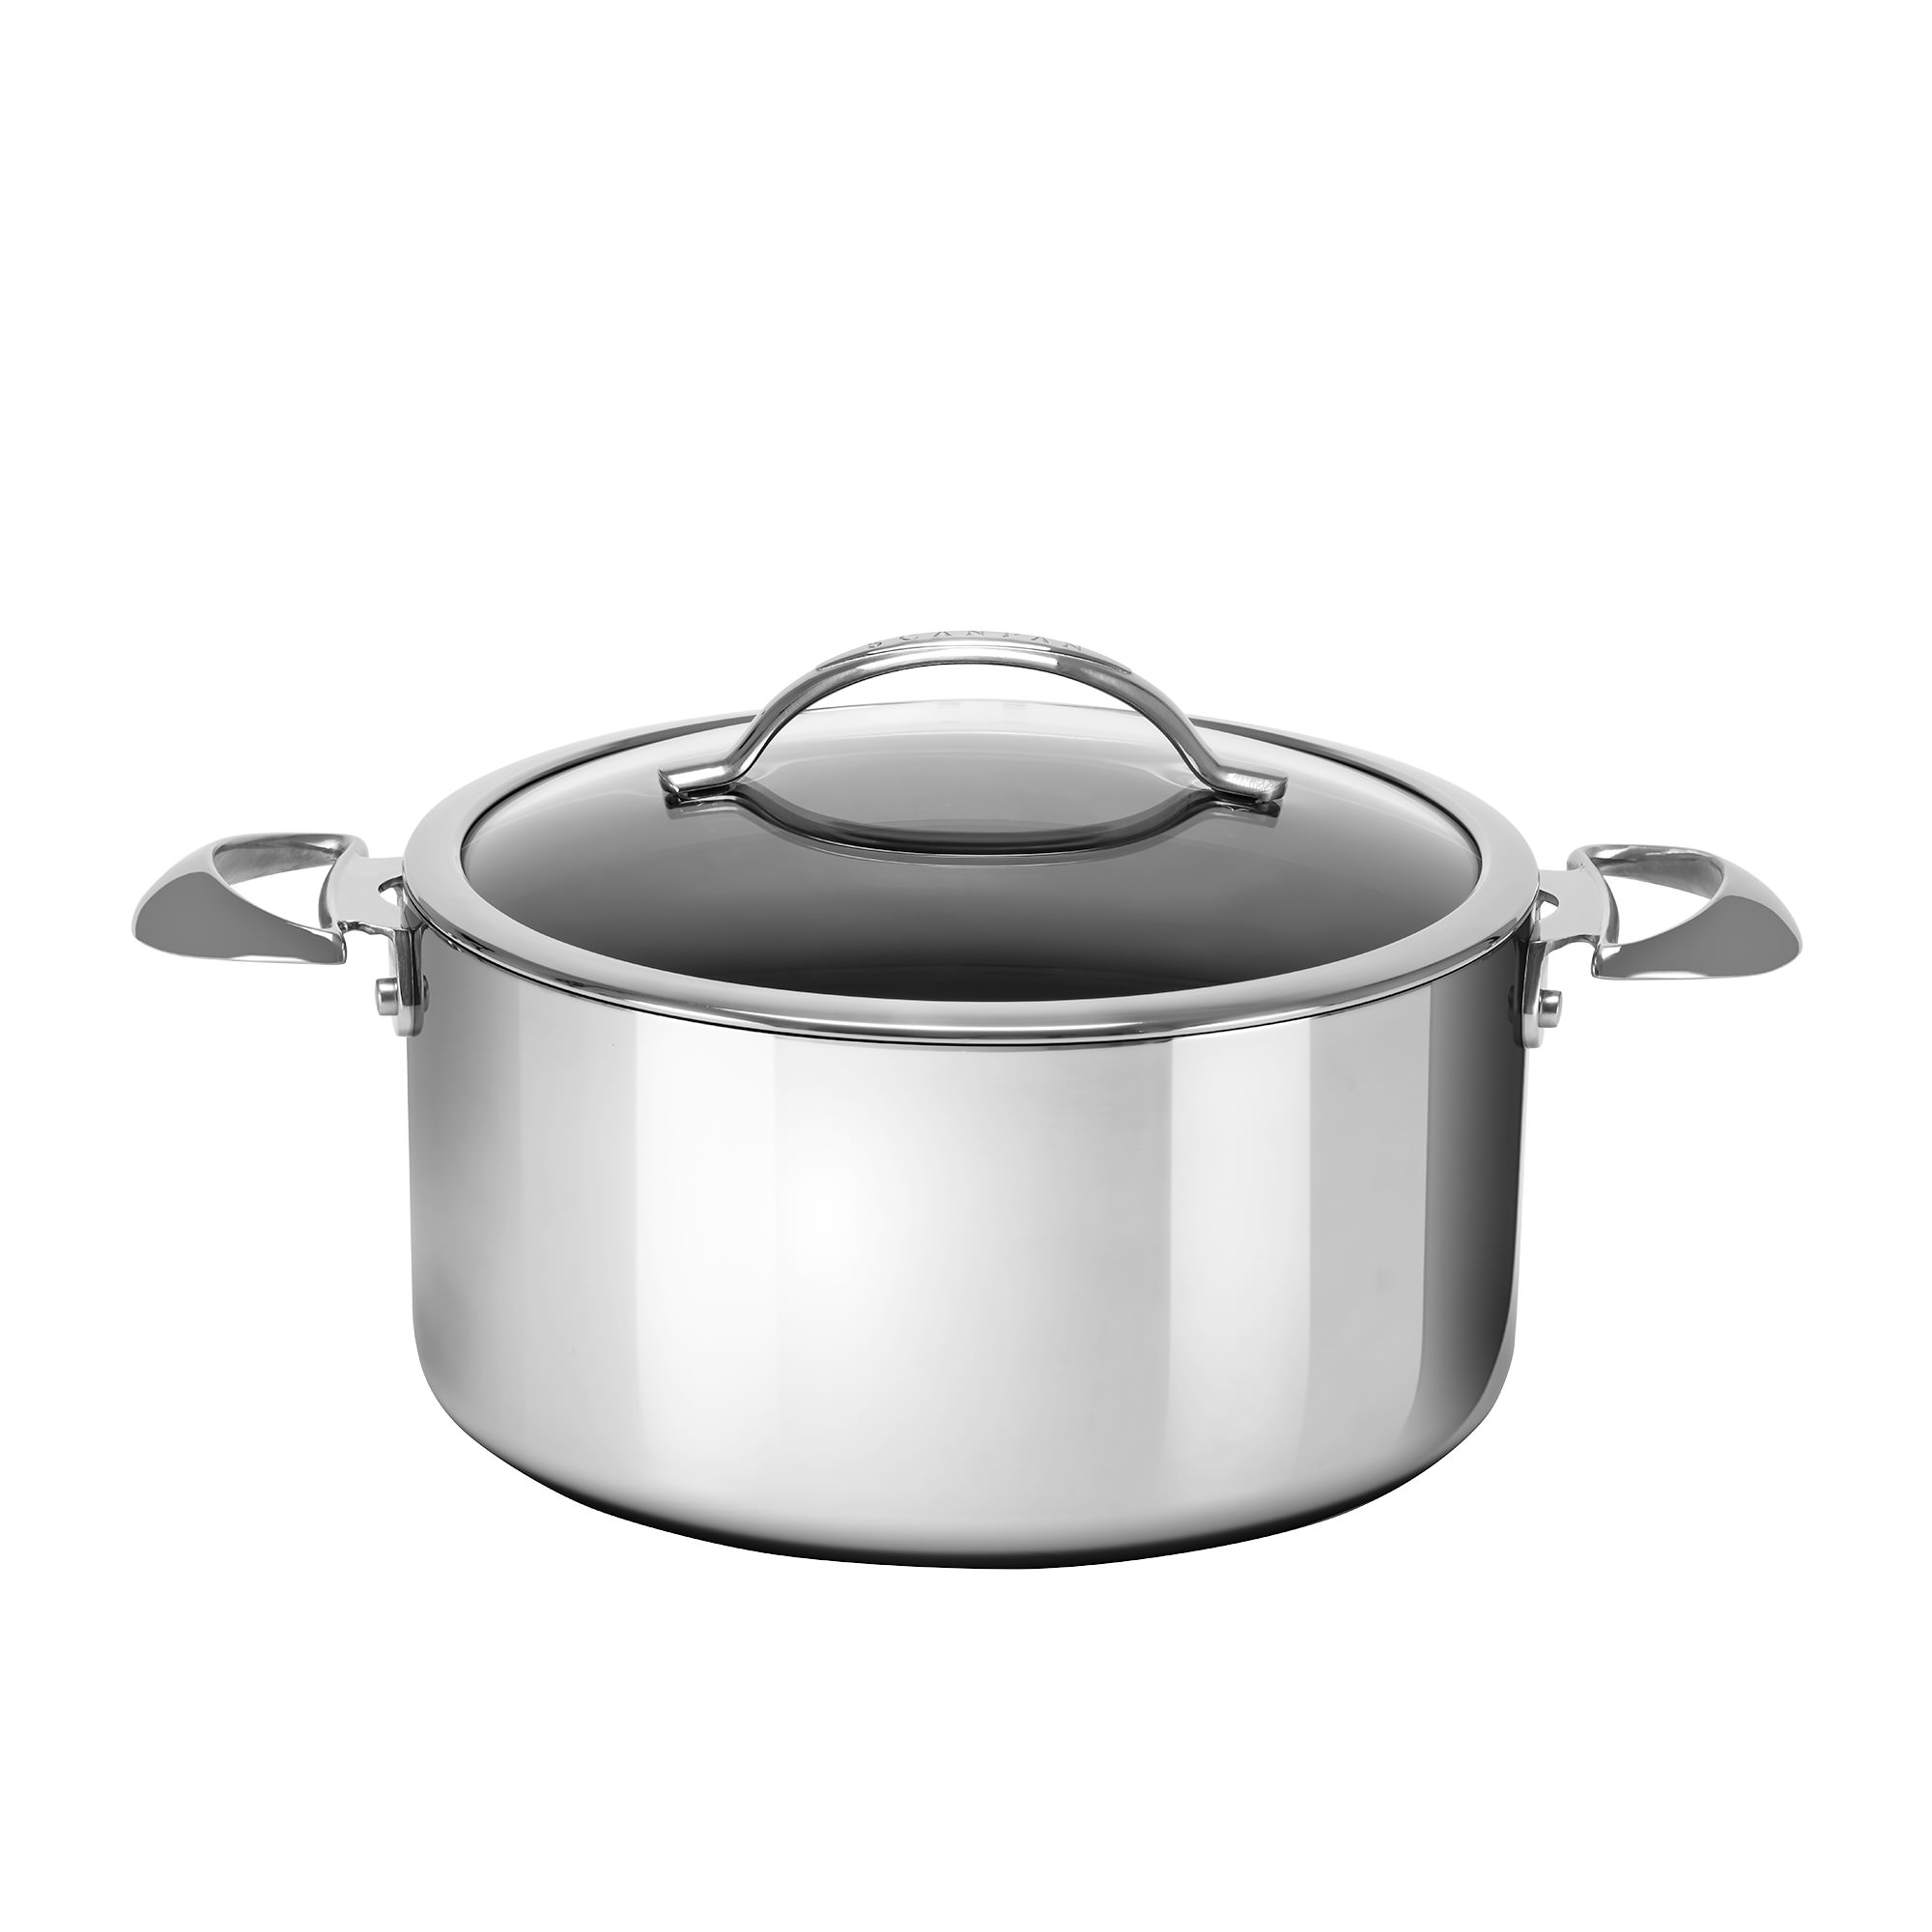 Scanpan HaptIQ Dutch Oven 26cm - 6.5L